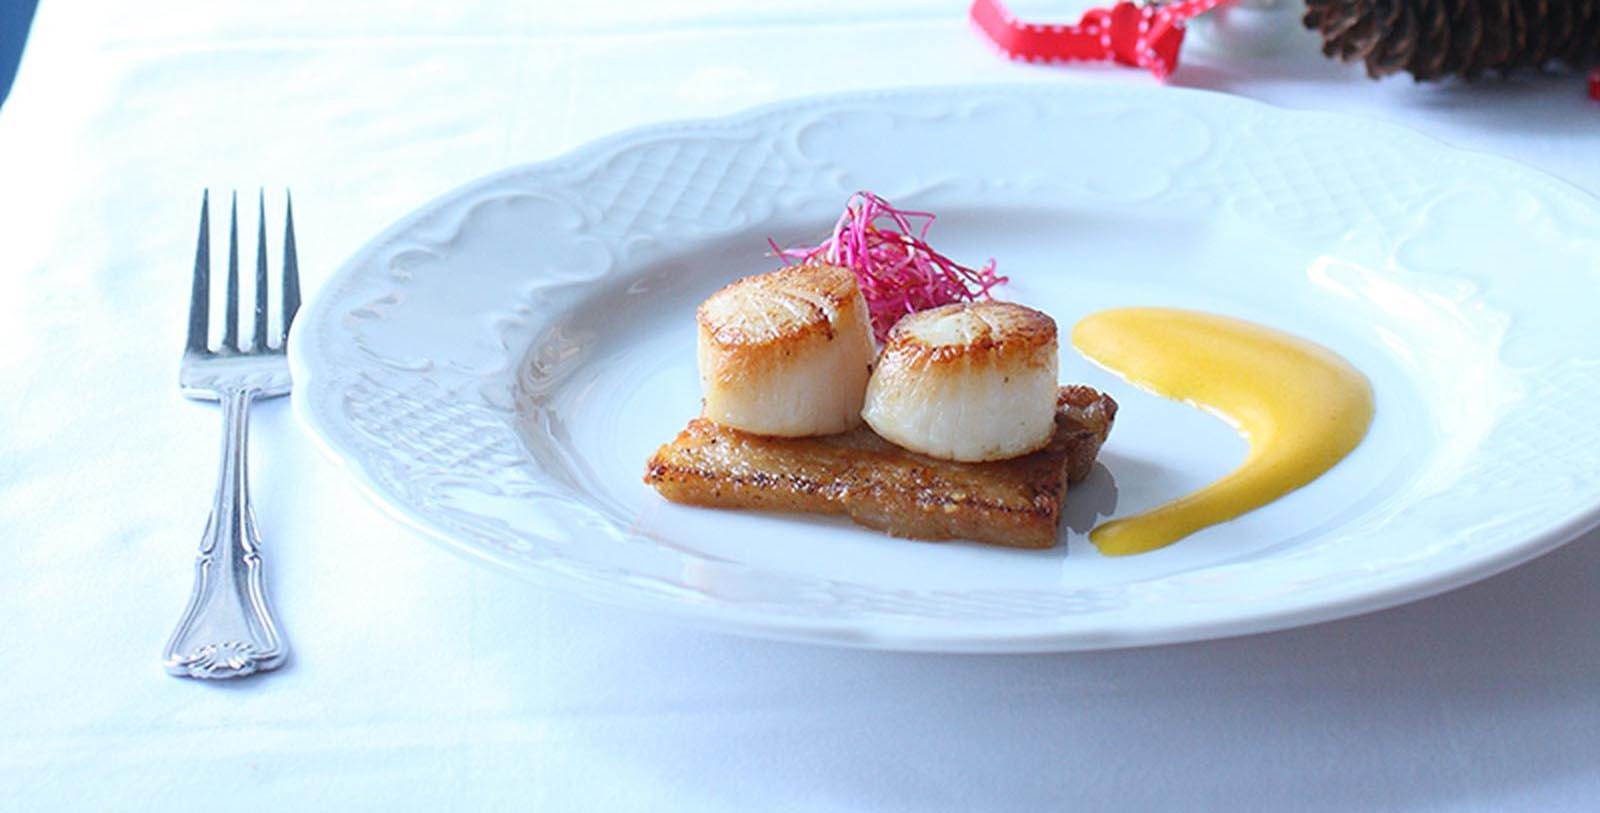 Image of Scallops at Restaurant, Hotel Union Øye, Norangsfjorden, Norway, 1891, Member of Historic Hotels Worldwide, Taste